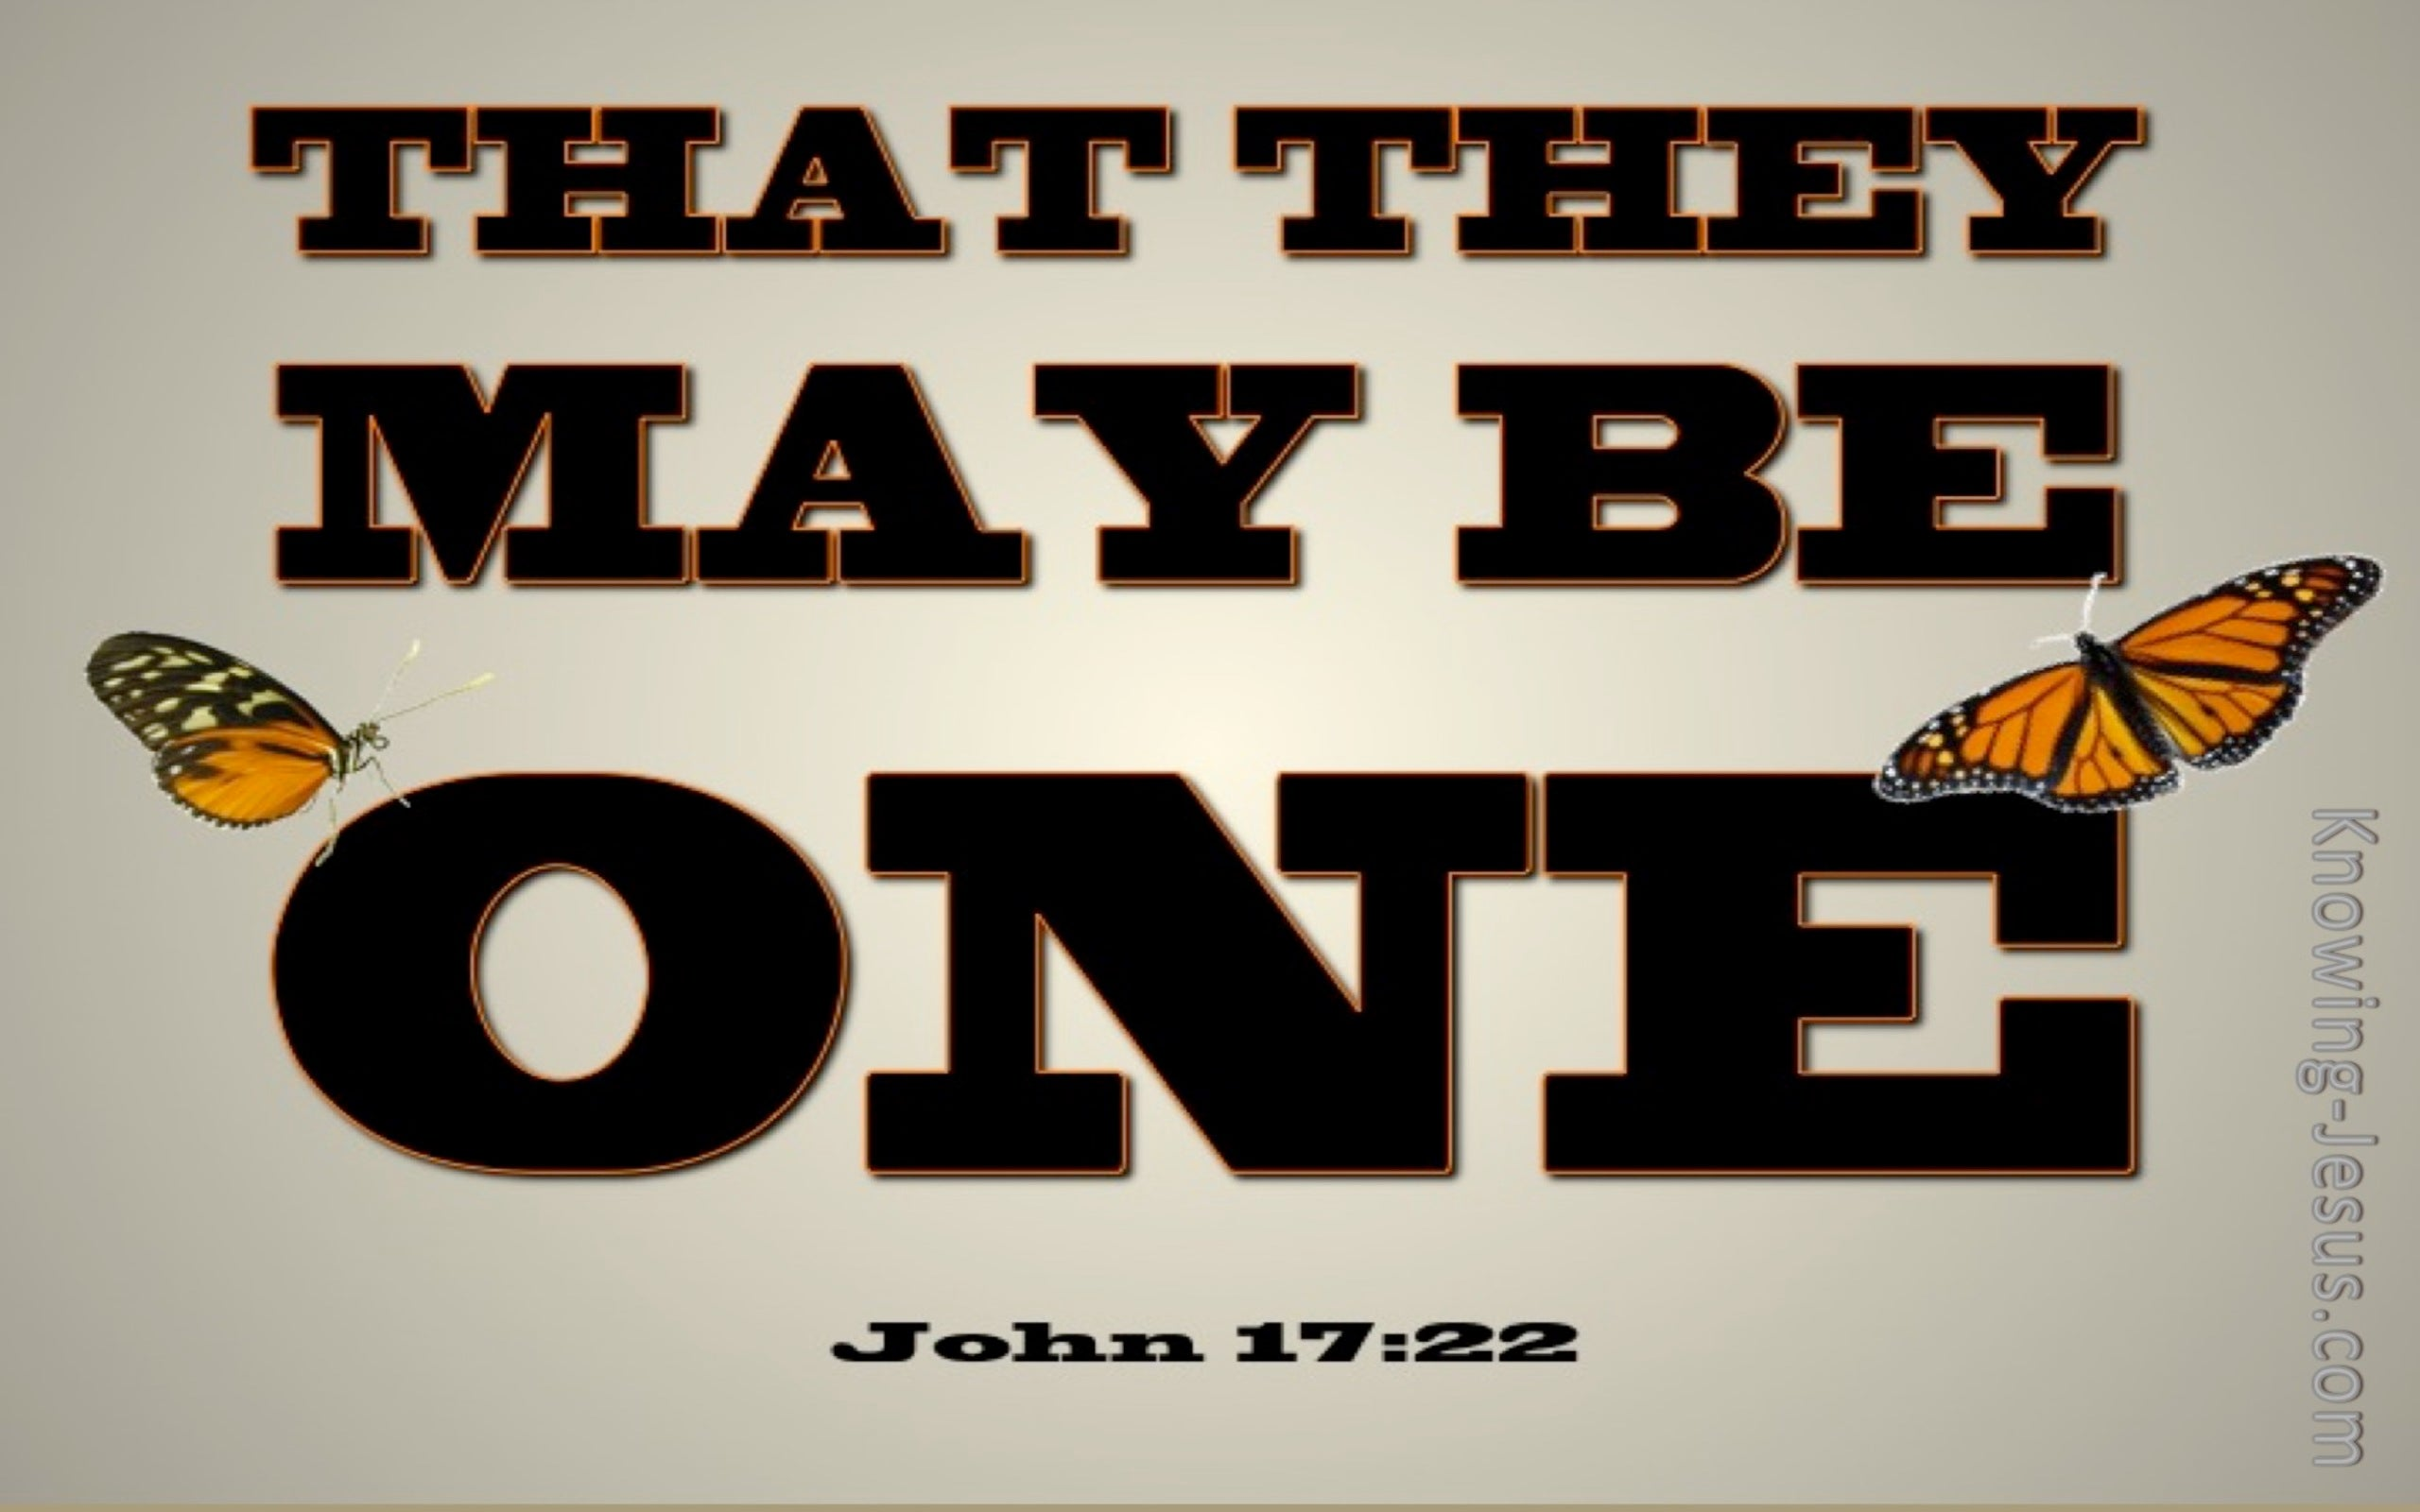 John 17:22 That They May Be One (beige)